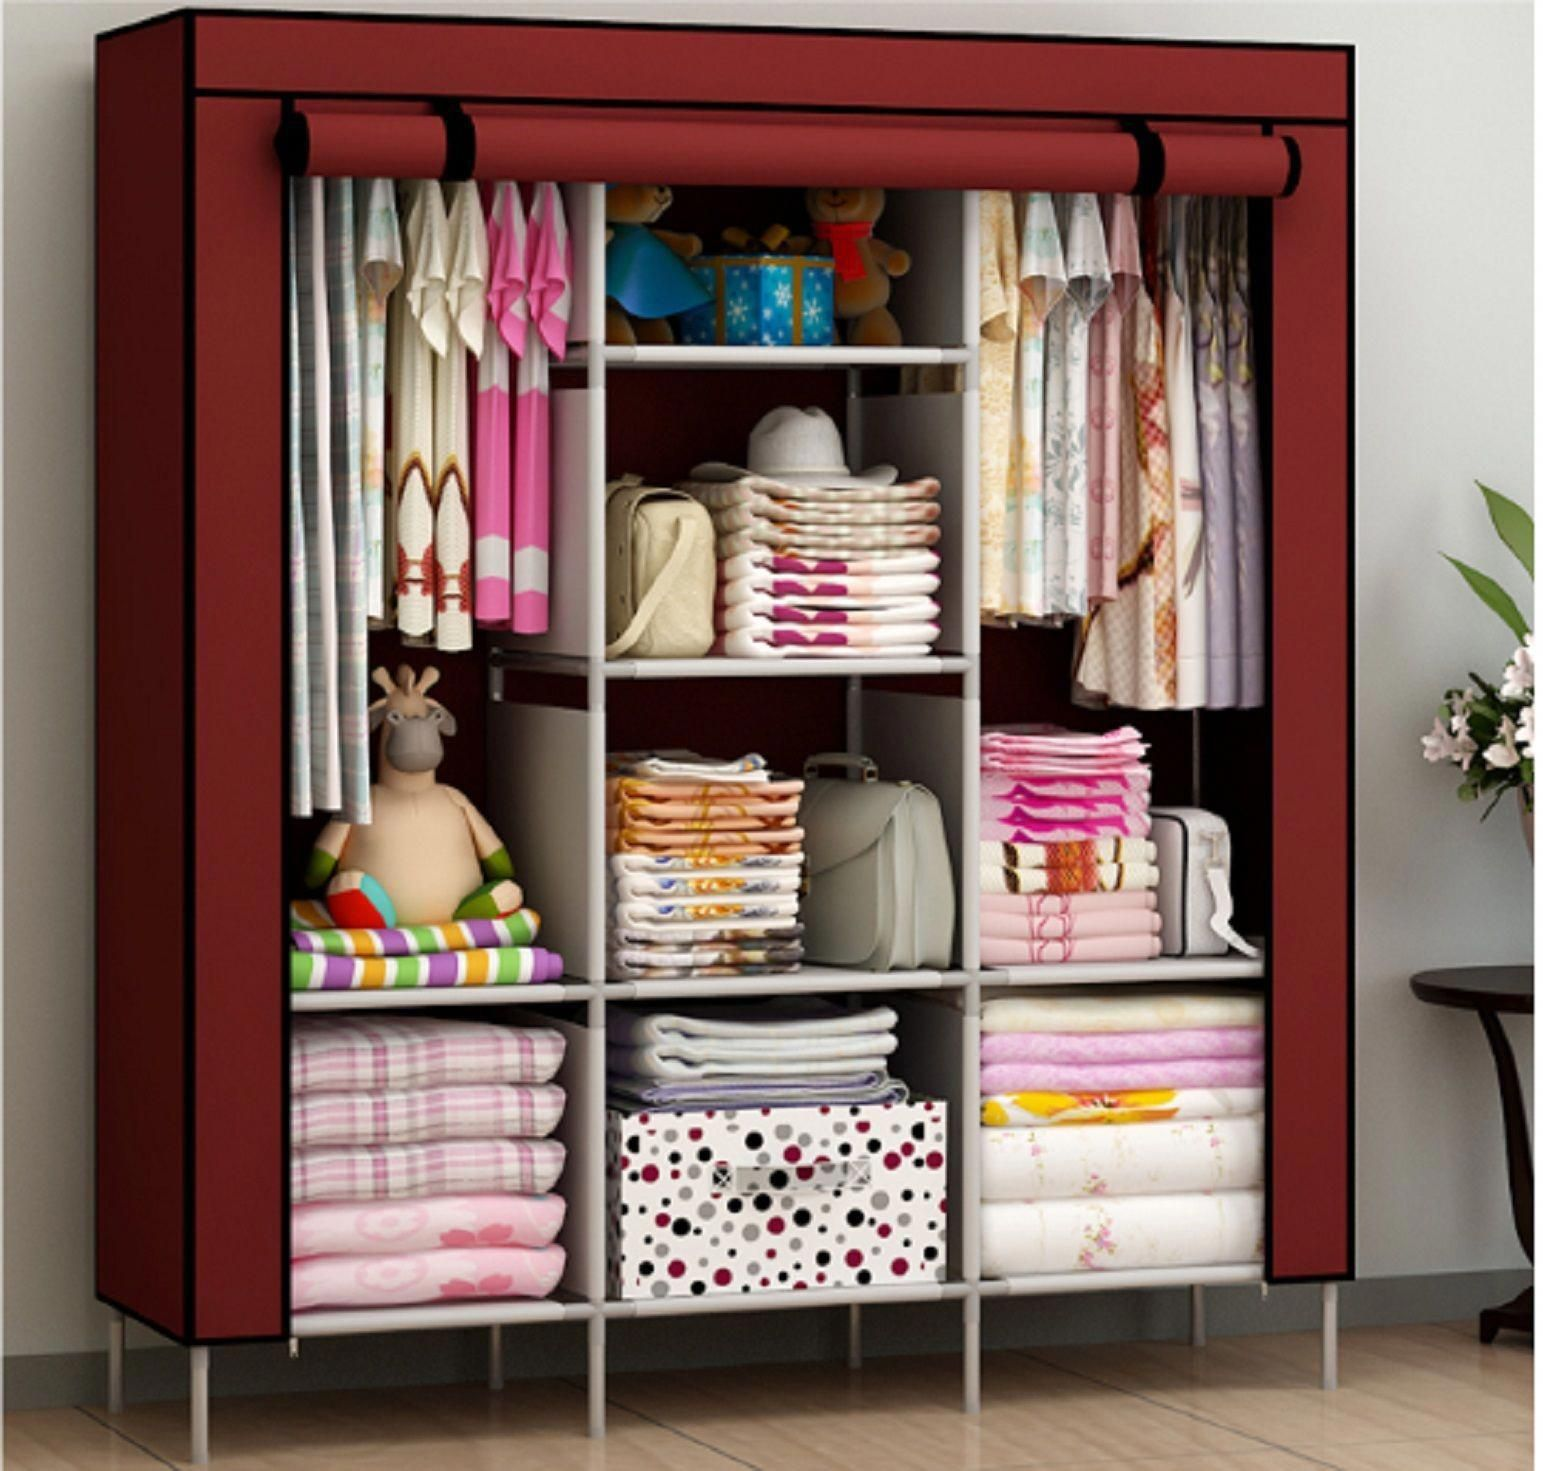 New Portable Bedroom Furniture Clothes Wardrobe Closet Storage Cabinet Armoires Ebay Closetorg Wardrobe Closet Storage Collapsible Wardrobe Folding Wardrobe